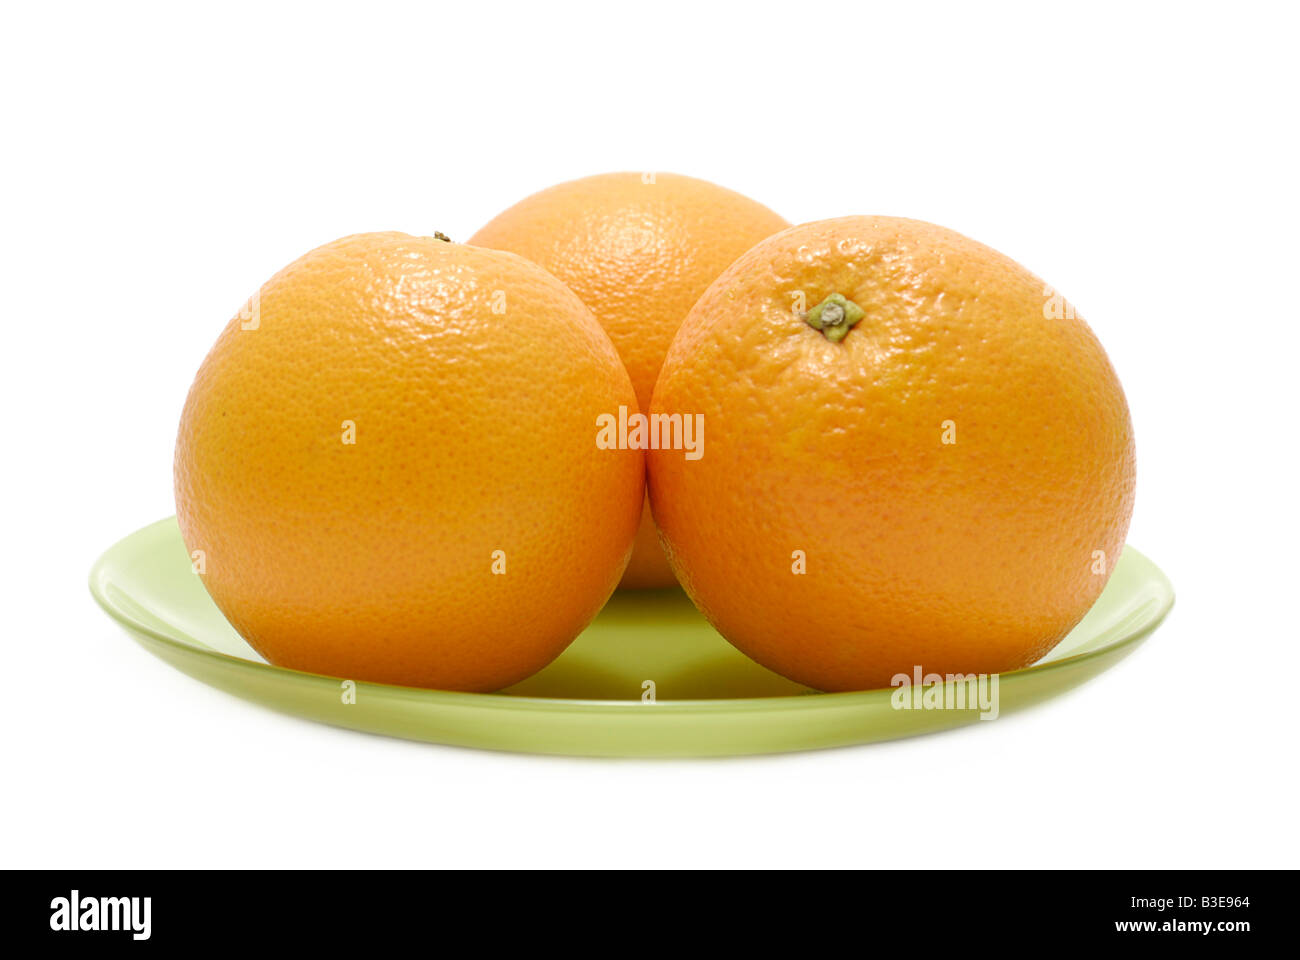 Oranges on a Plate - Stock Image